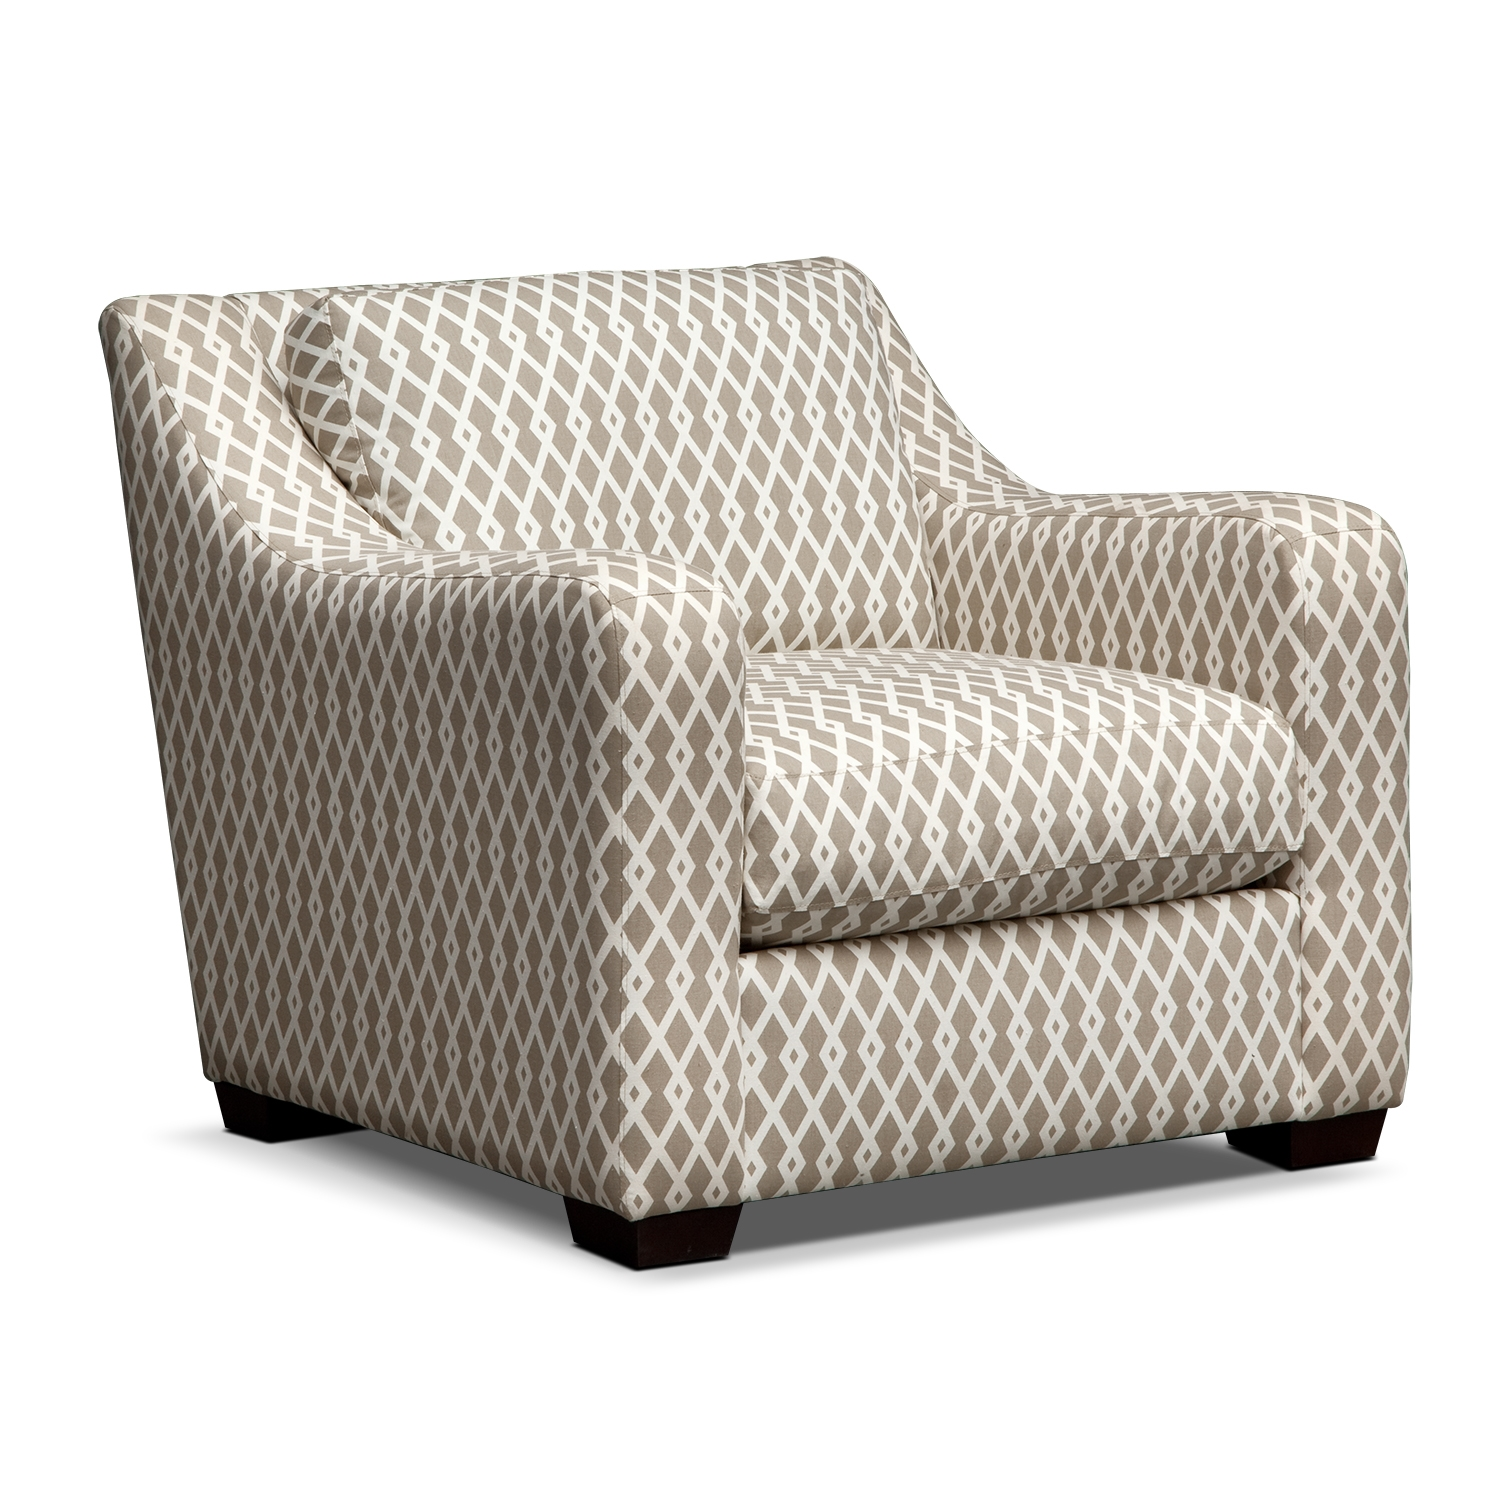 Extraordinary Accent Chair For Home Furniture Ideas With Accent Chairs With Arms And Accent Chairs For Living Room